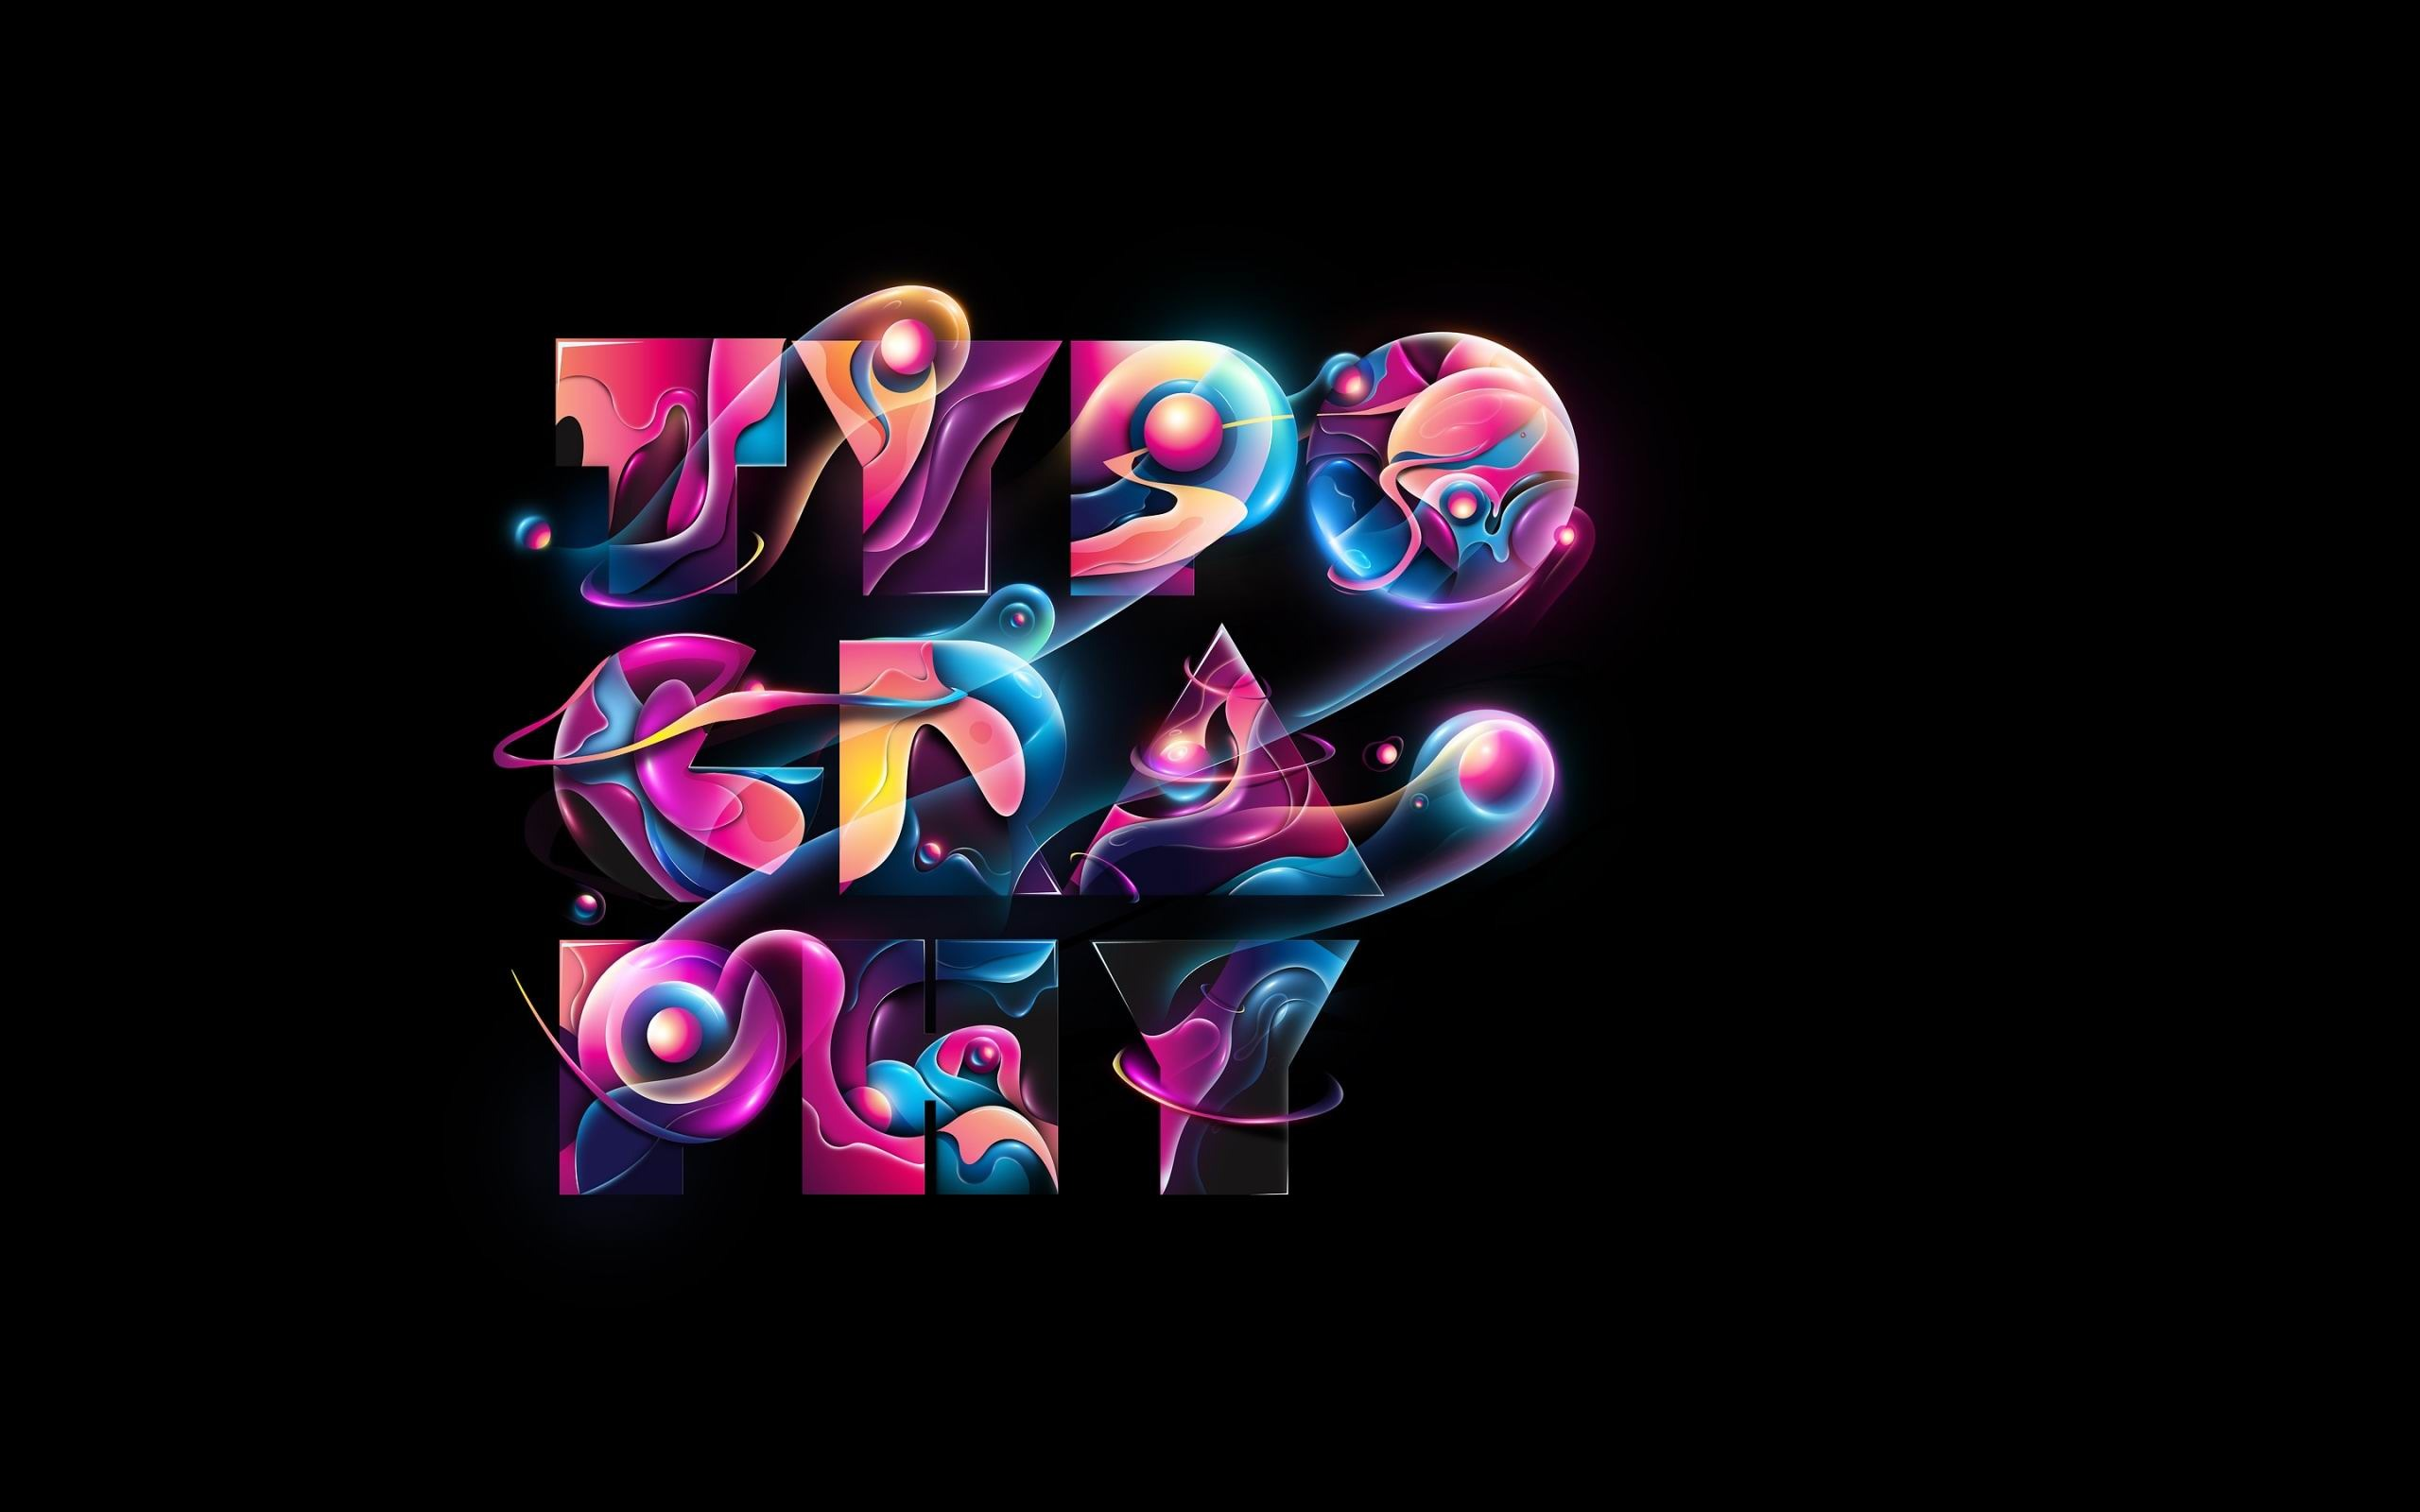 typography-creative graphic design wallpapers preview | 10wallpaper